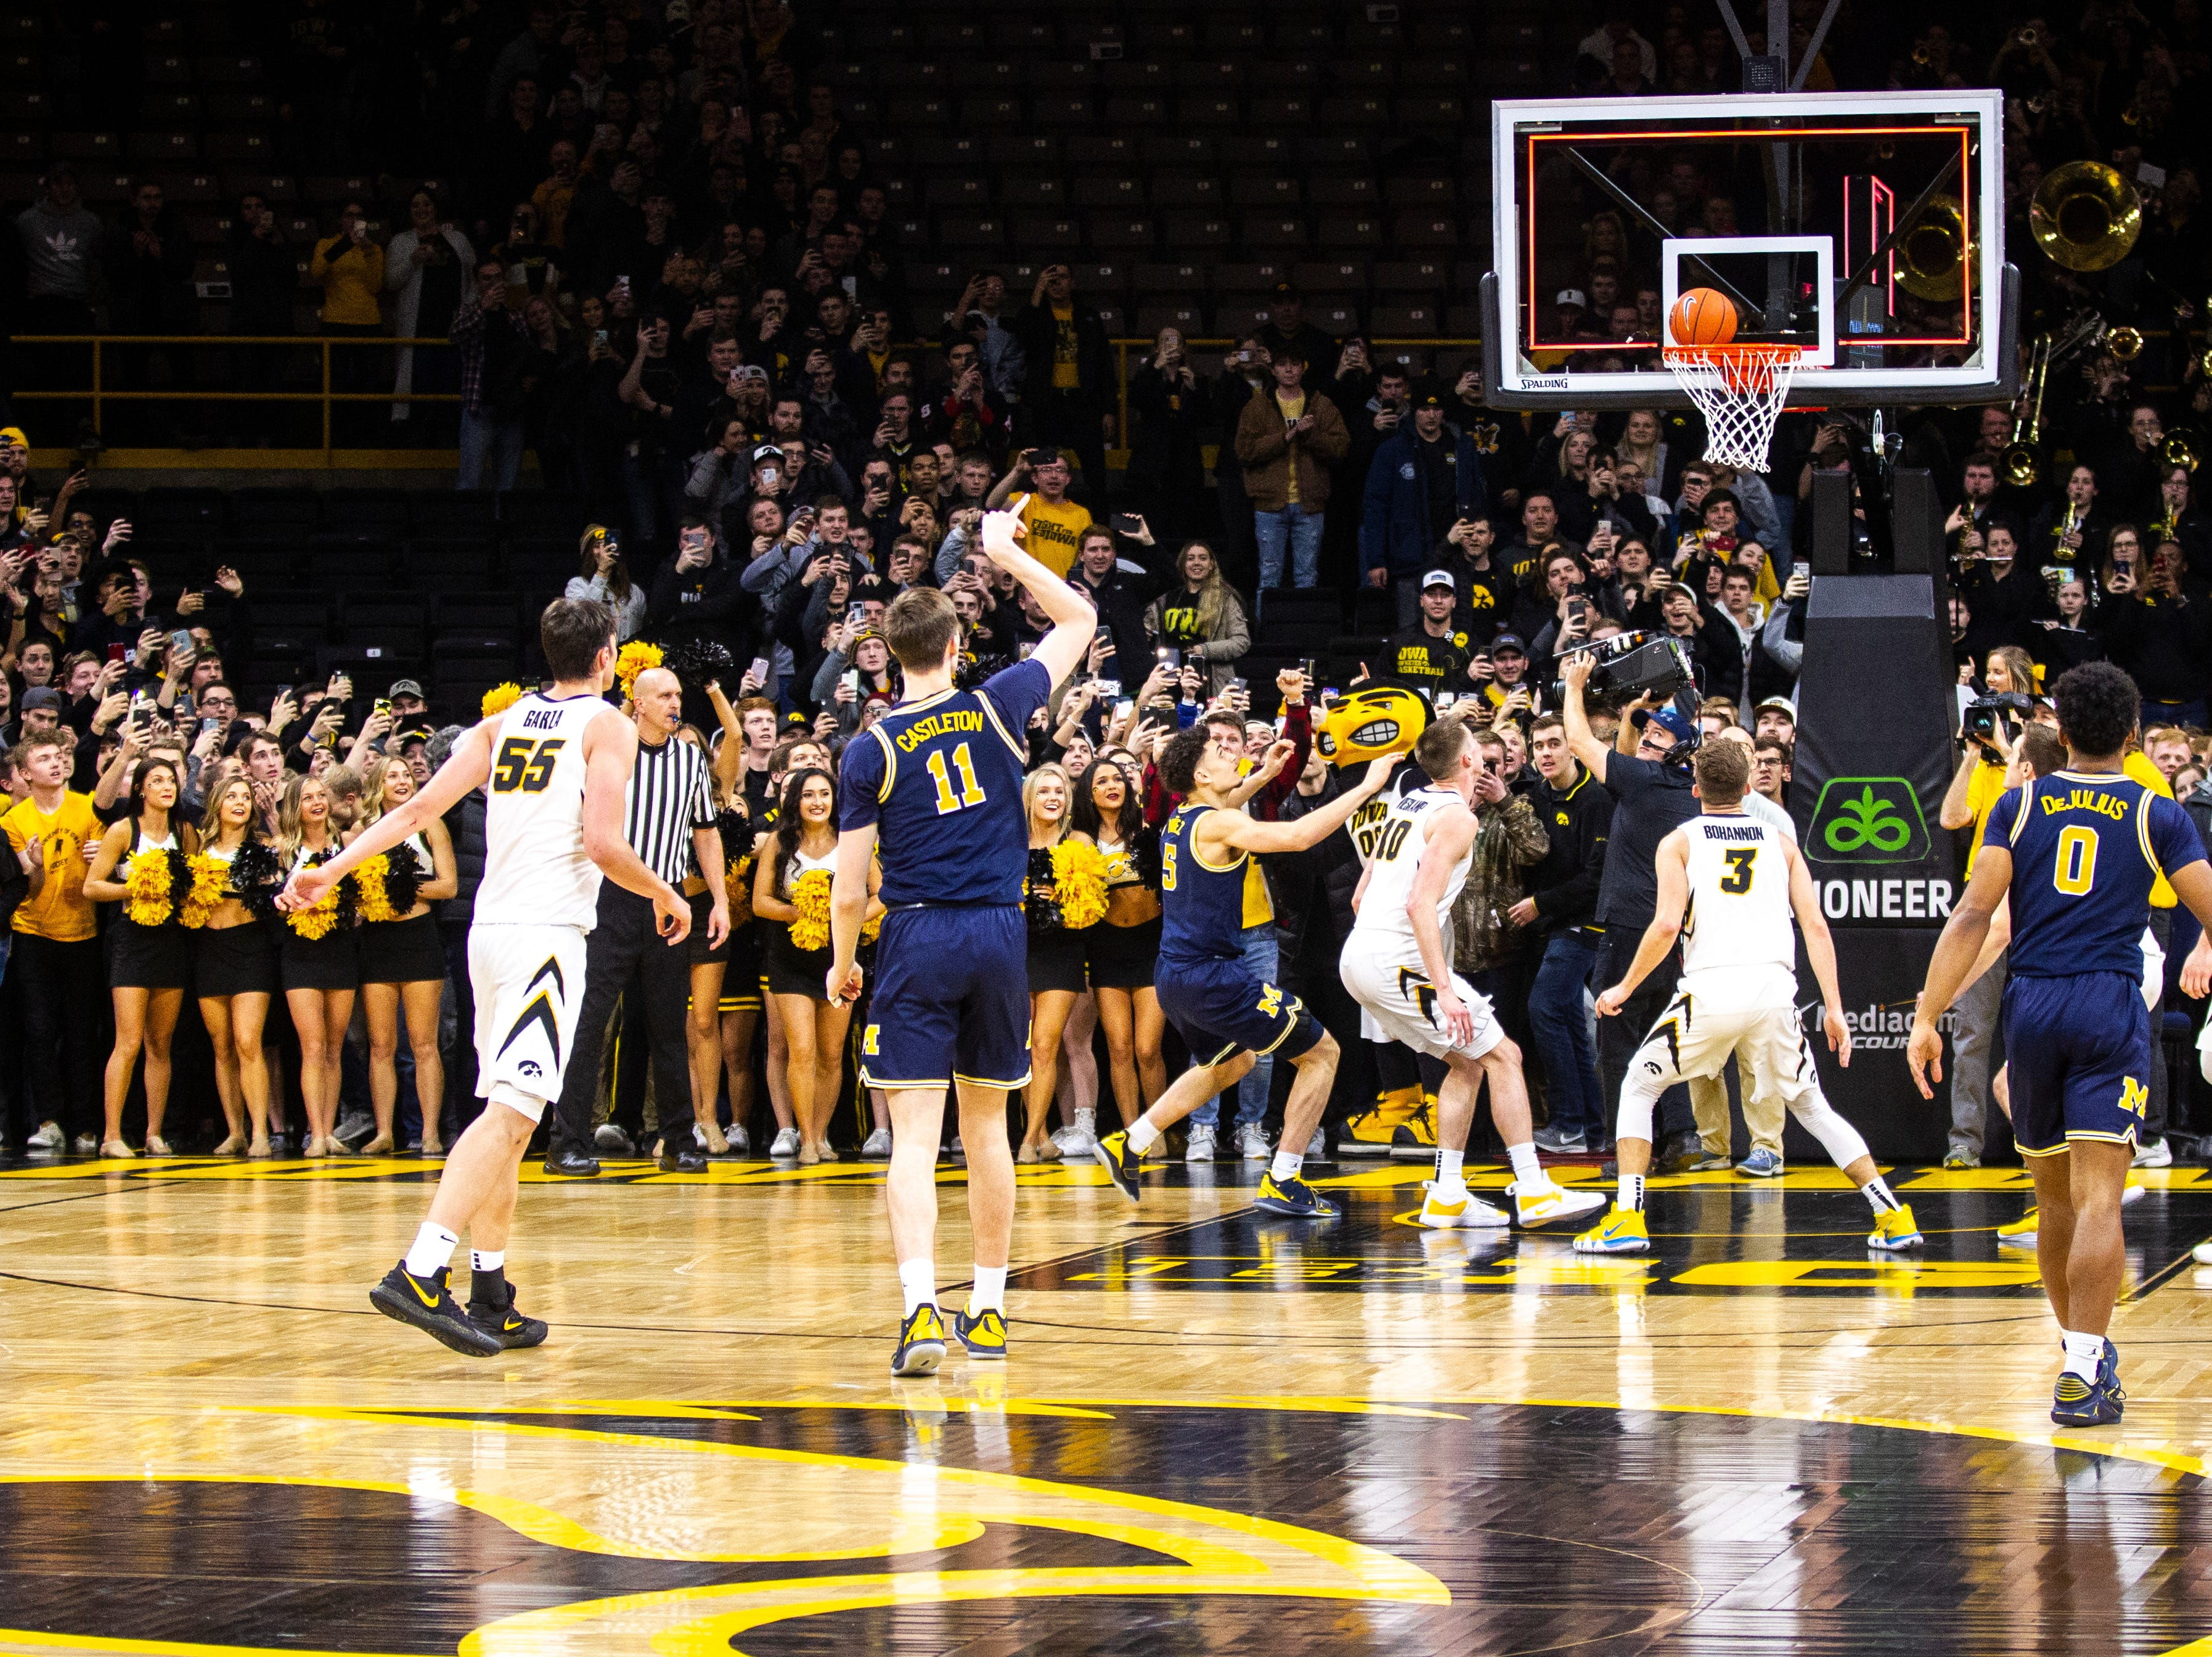 Michigan forward Colin Castleton (11) misses a 3-point basket at the buzzer during a NCAA Big Ten Conference men's basketball game on Friday, Feb. 1, 2019, at Carver-Hawkeye Arena in Iowa City, Iowa. The Hawkeyes defeated Michigan's Wolverines, 74-59.